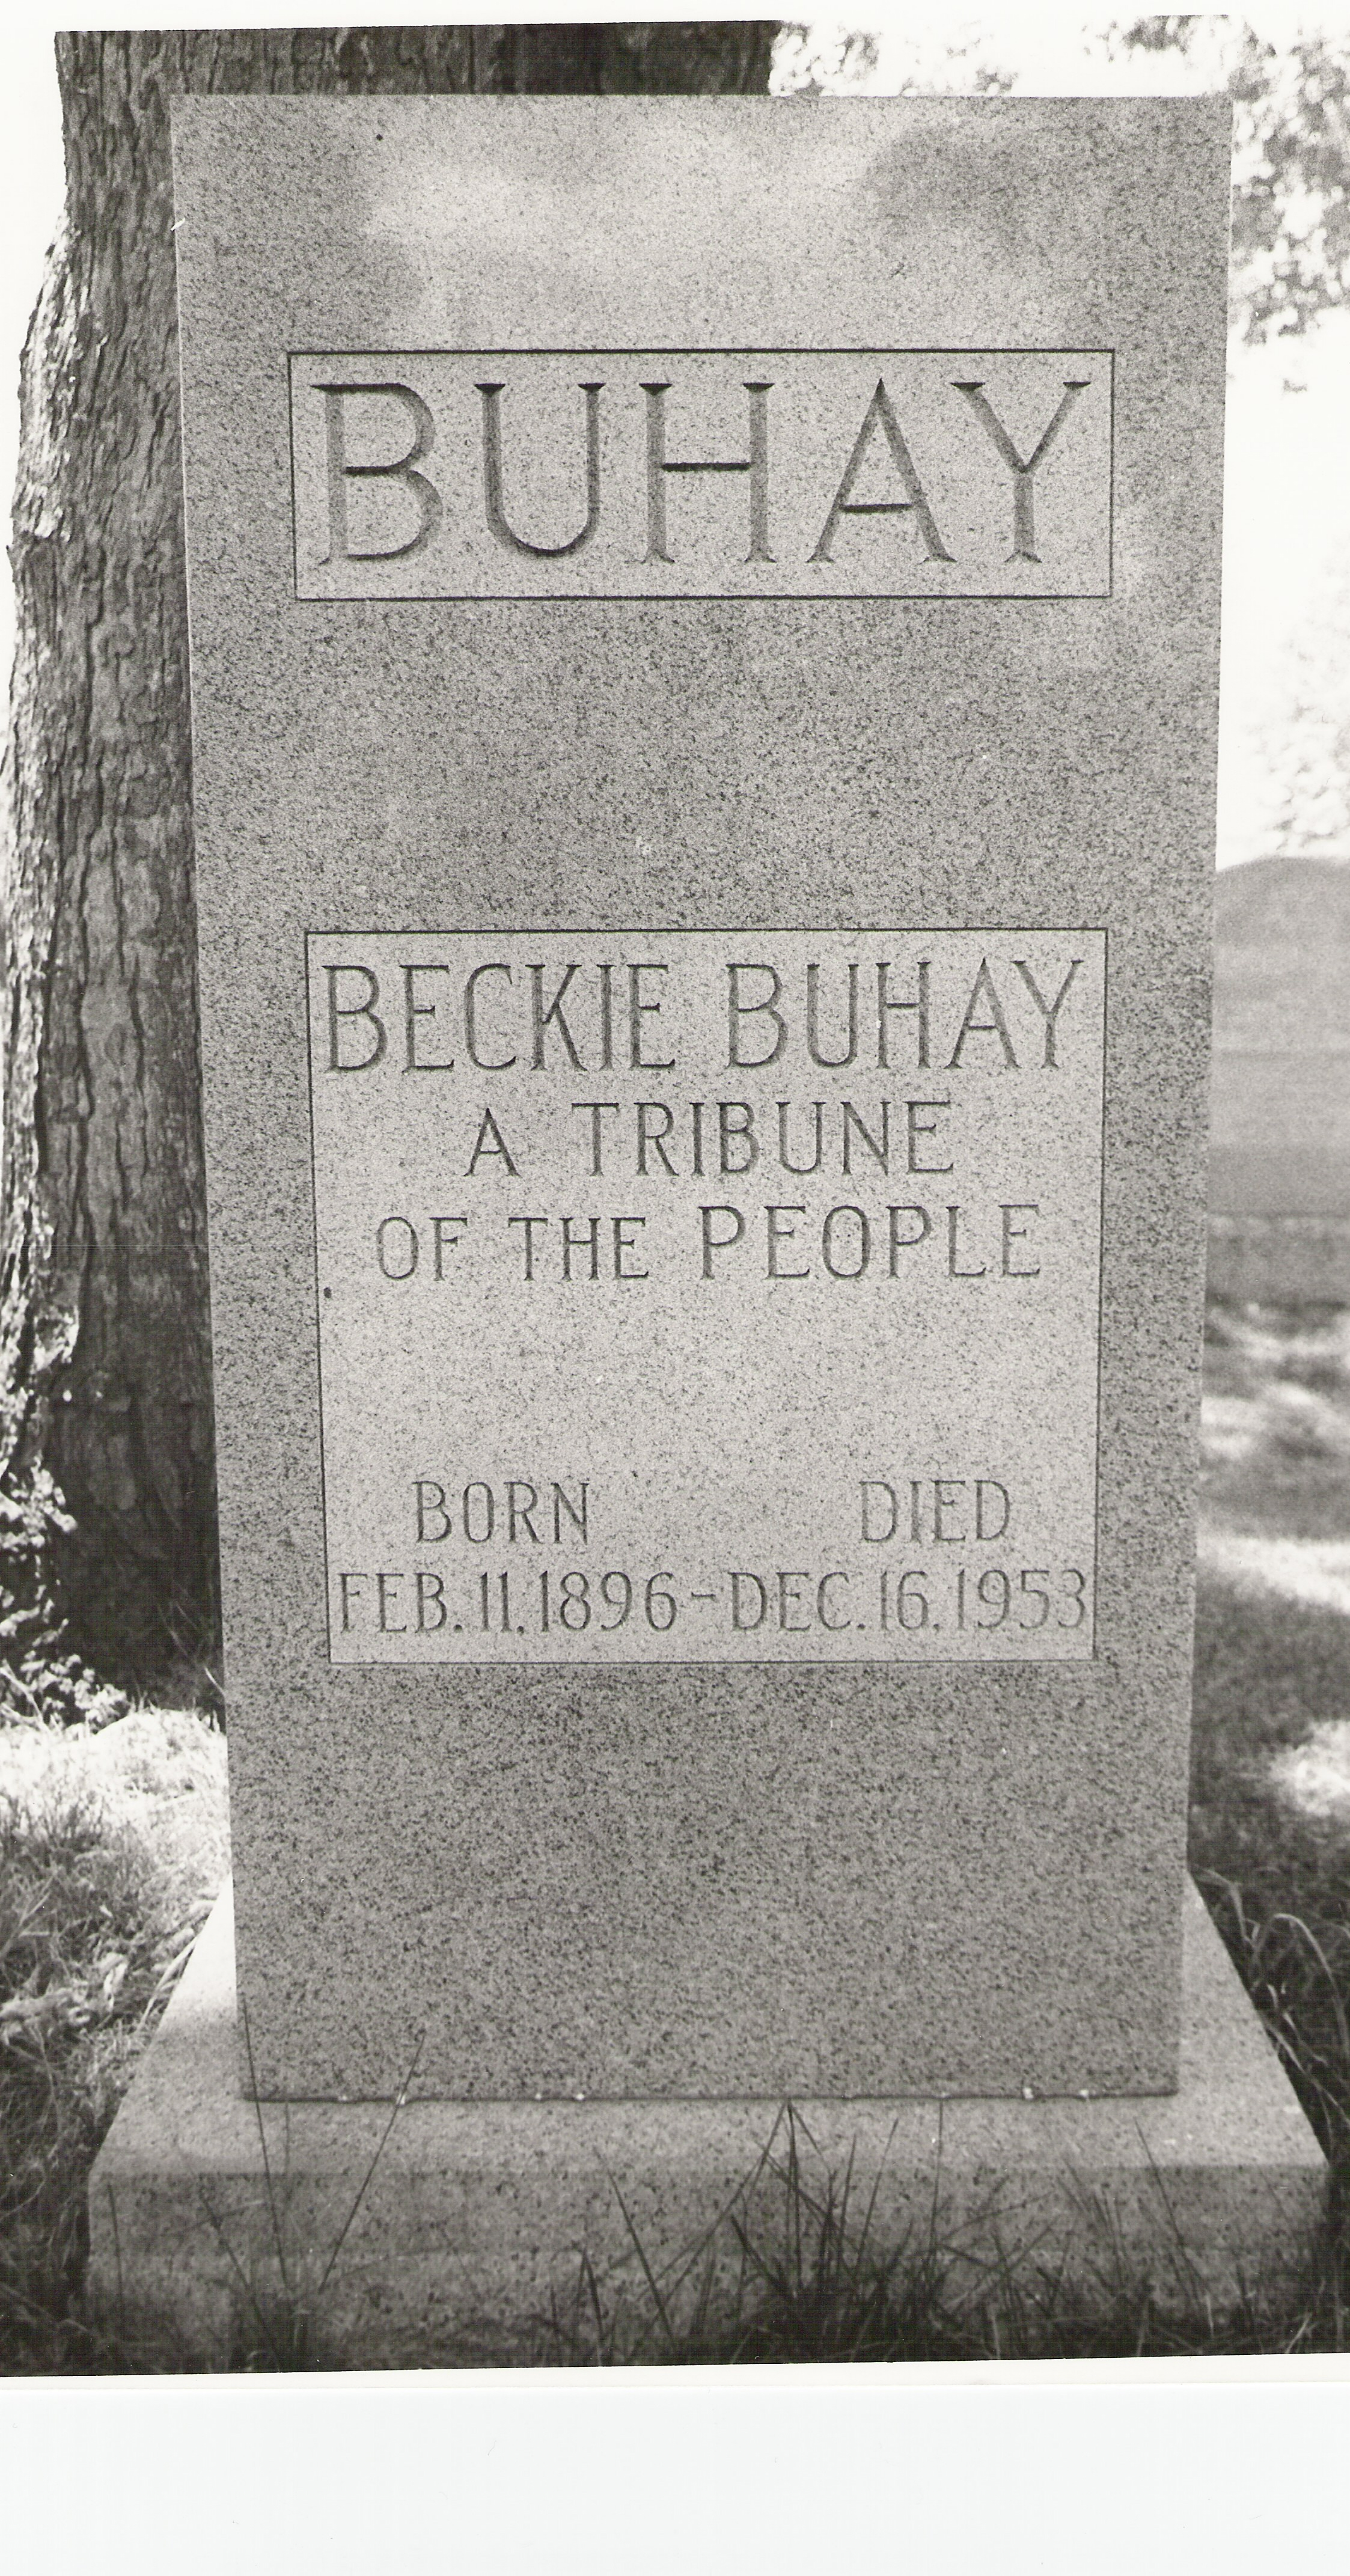 Buhay tombstone